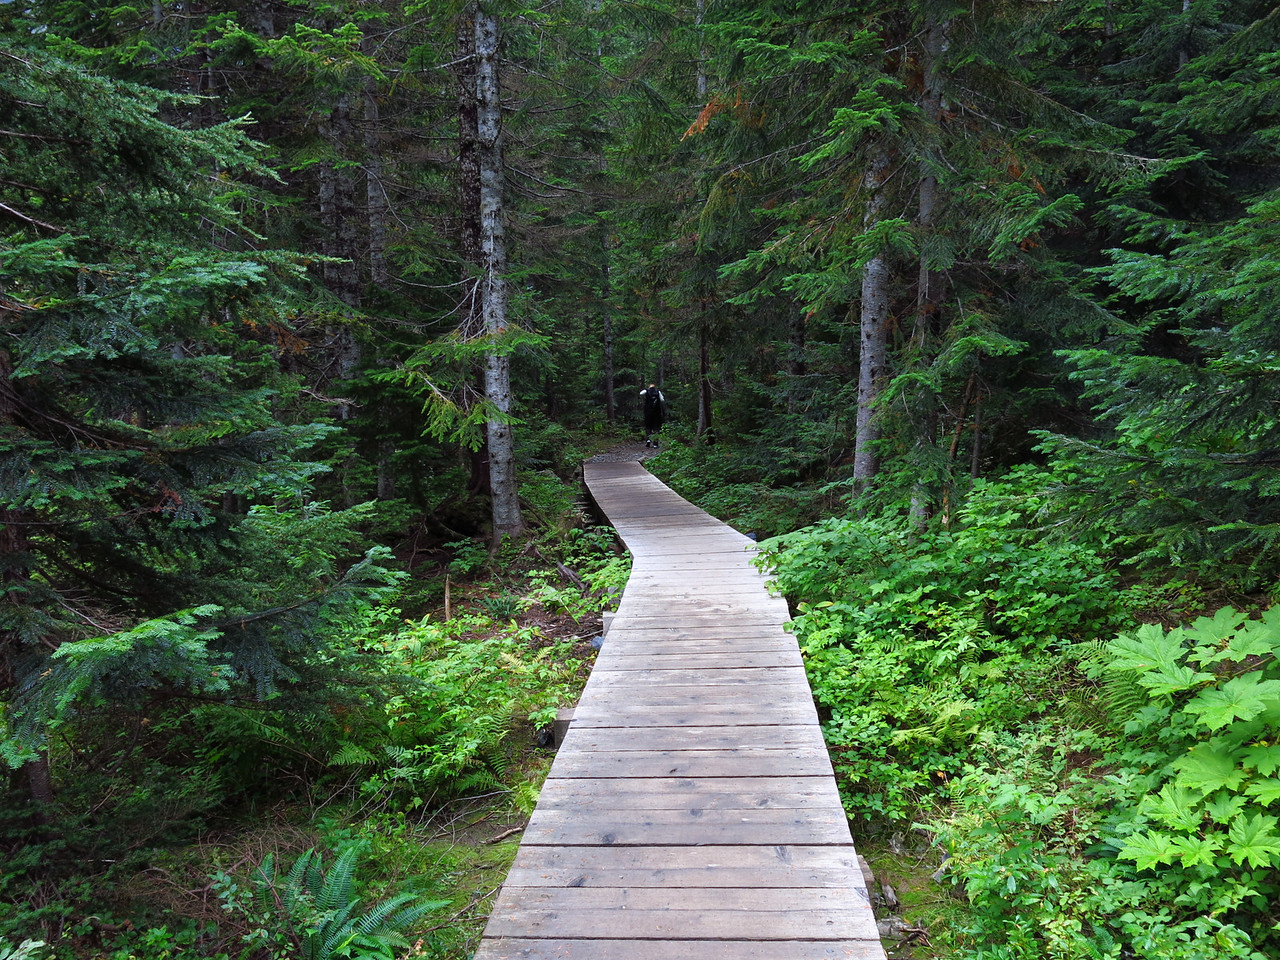 """We circumnavigated the lake in a counter-clockwise direction.   Martin remembered his venerable high school math teacher, who asserted, """"The only thing that runs clockwise is the clock.""""  This boardwalk provided an easy path."""